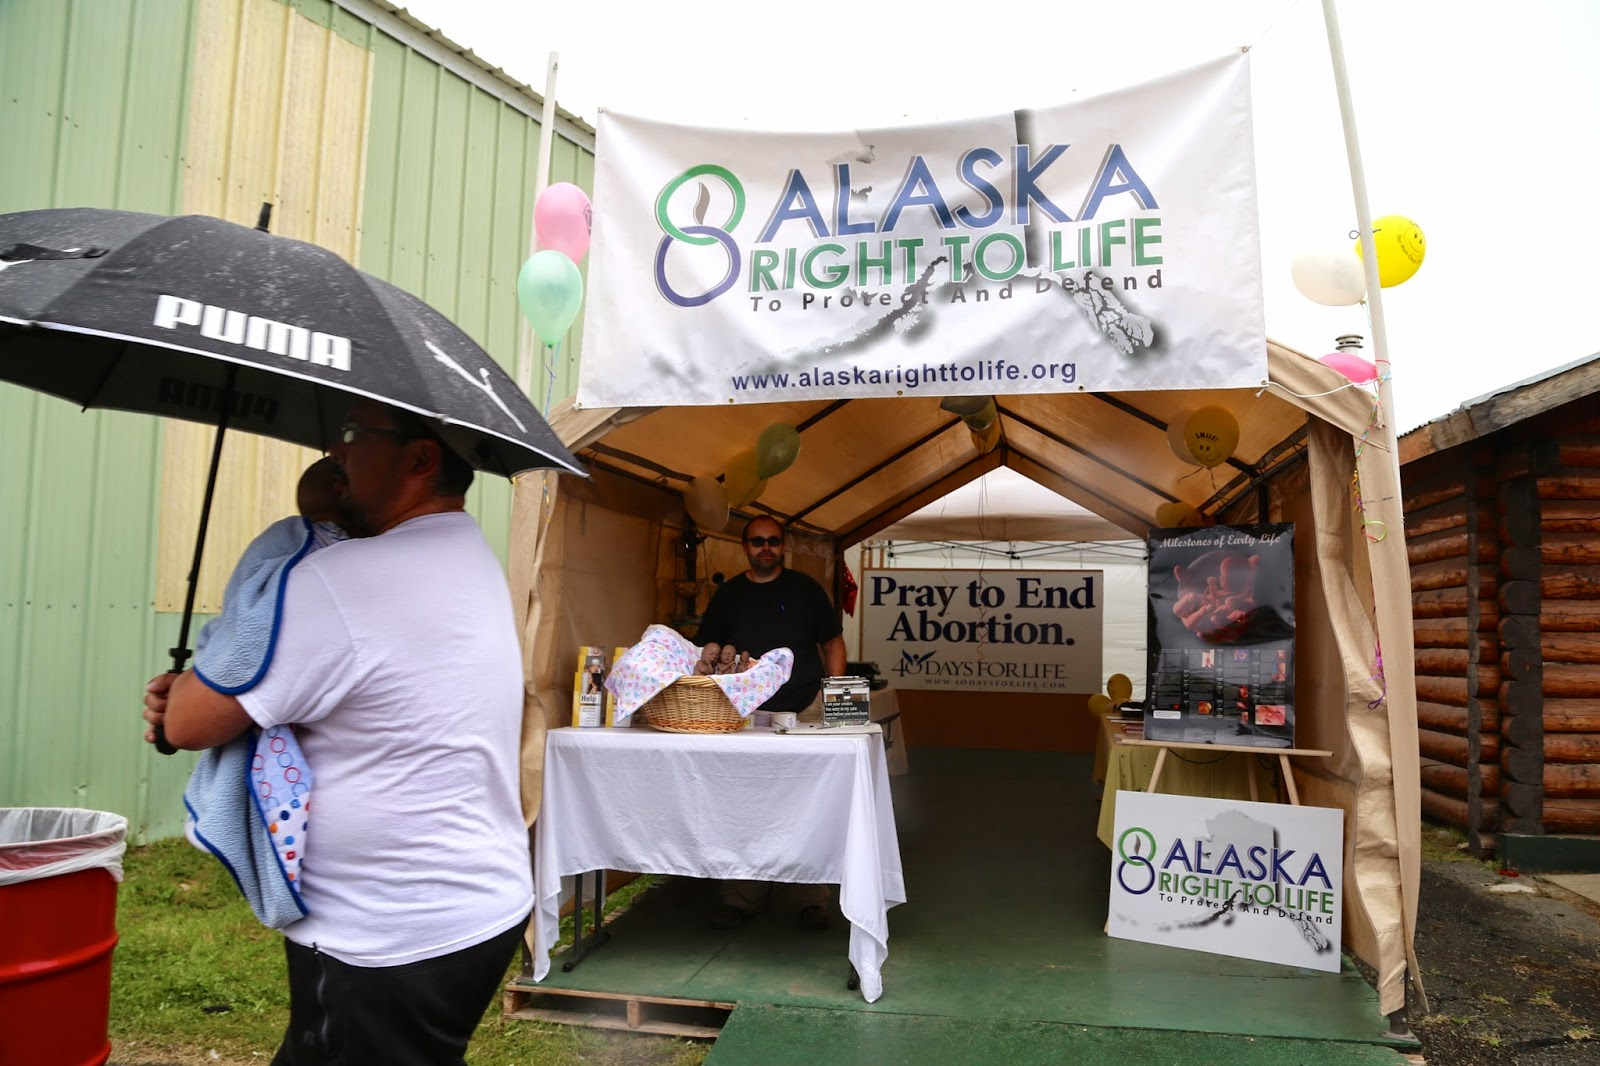 Right to life stand, Alaska State Fair